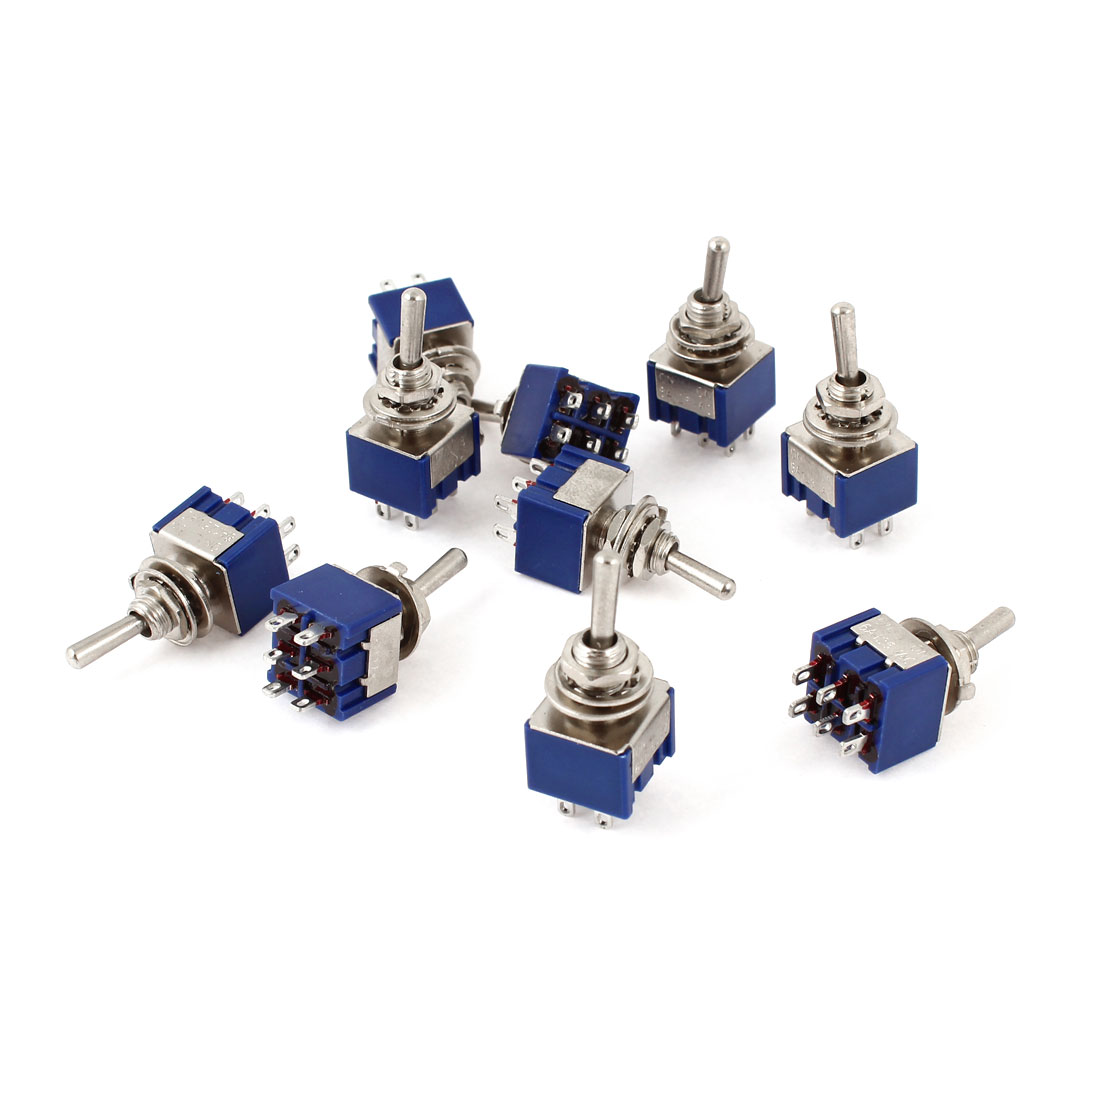 10 Pcs AC 125V 6A DPDT ON-ON 2 Position Locking 6 Pin Toggle Switch Replacement